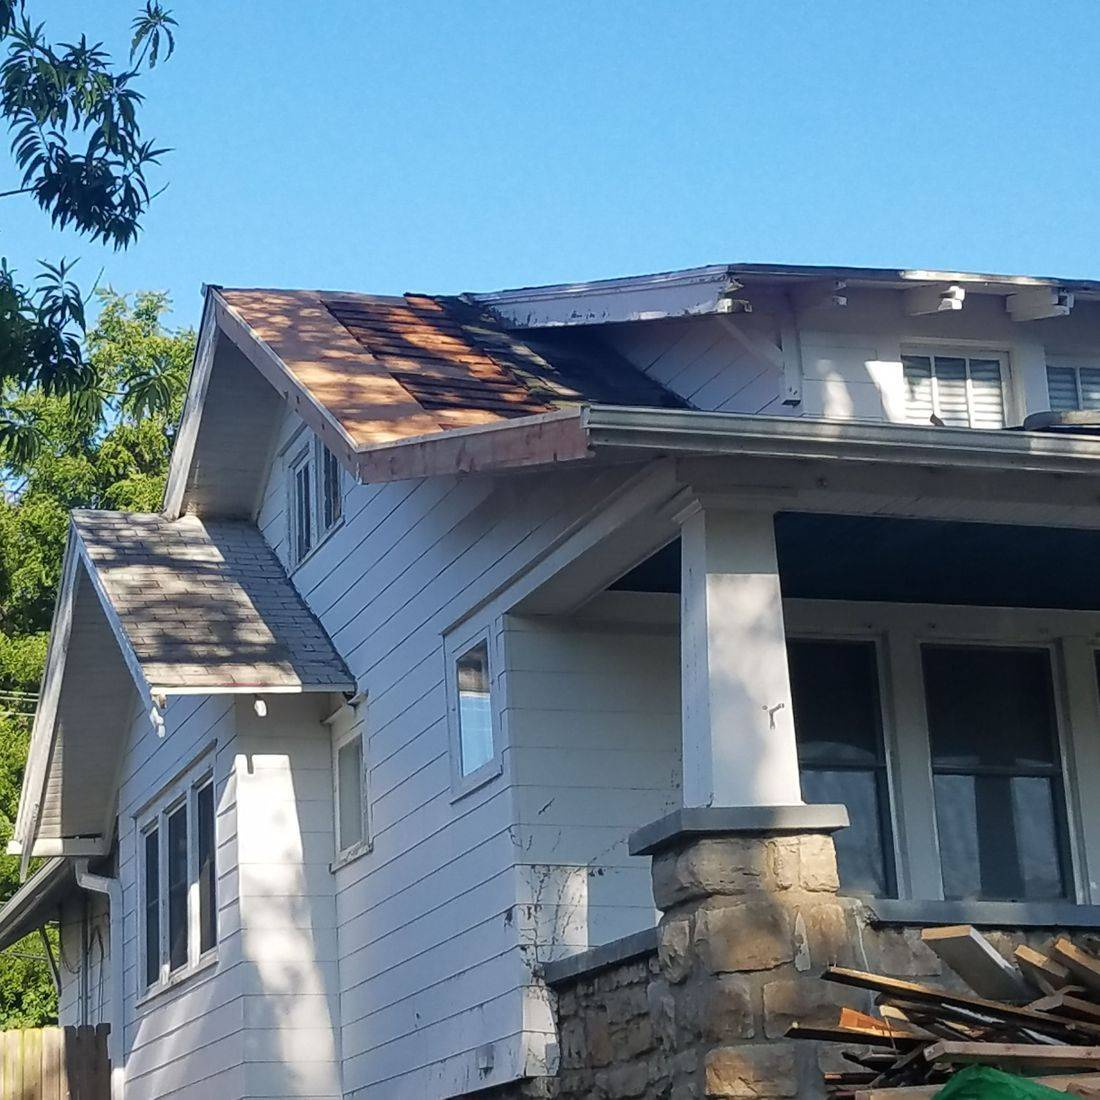 JOCO PVKS ROOF DAMAGE roofing framing